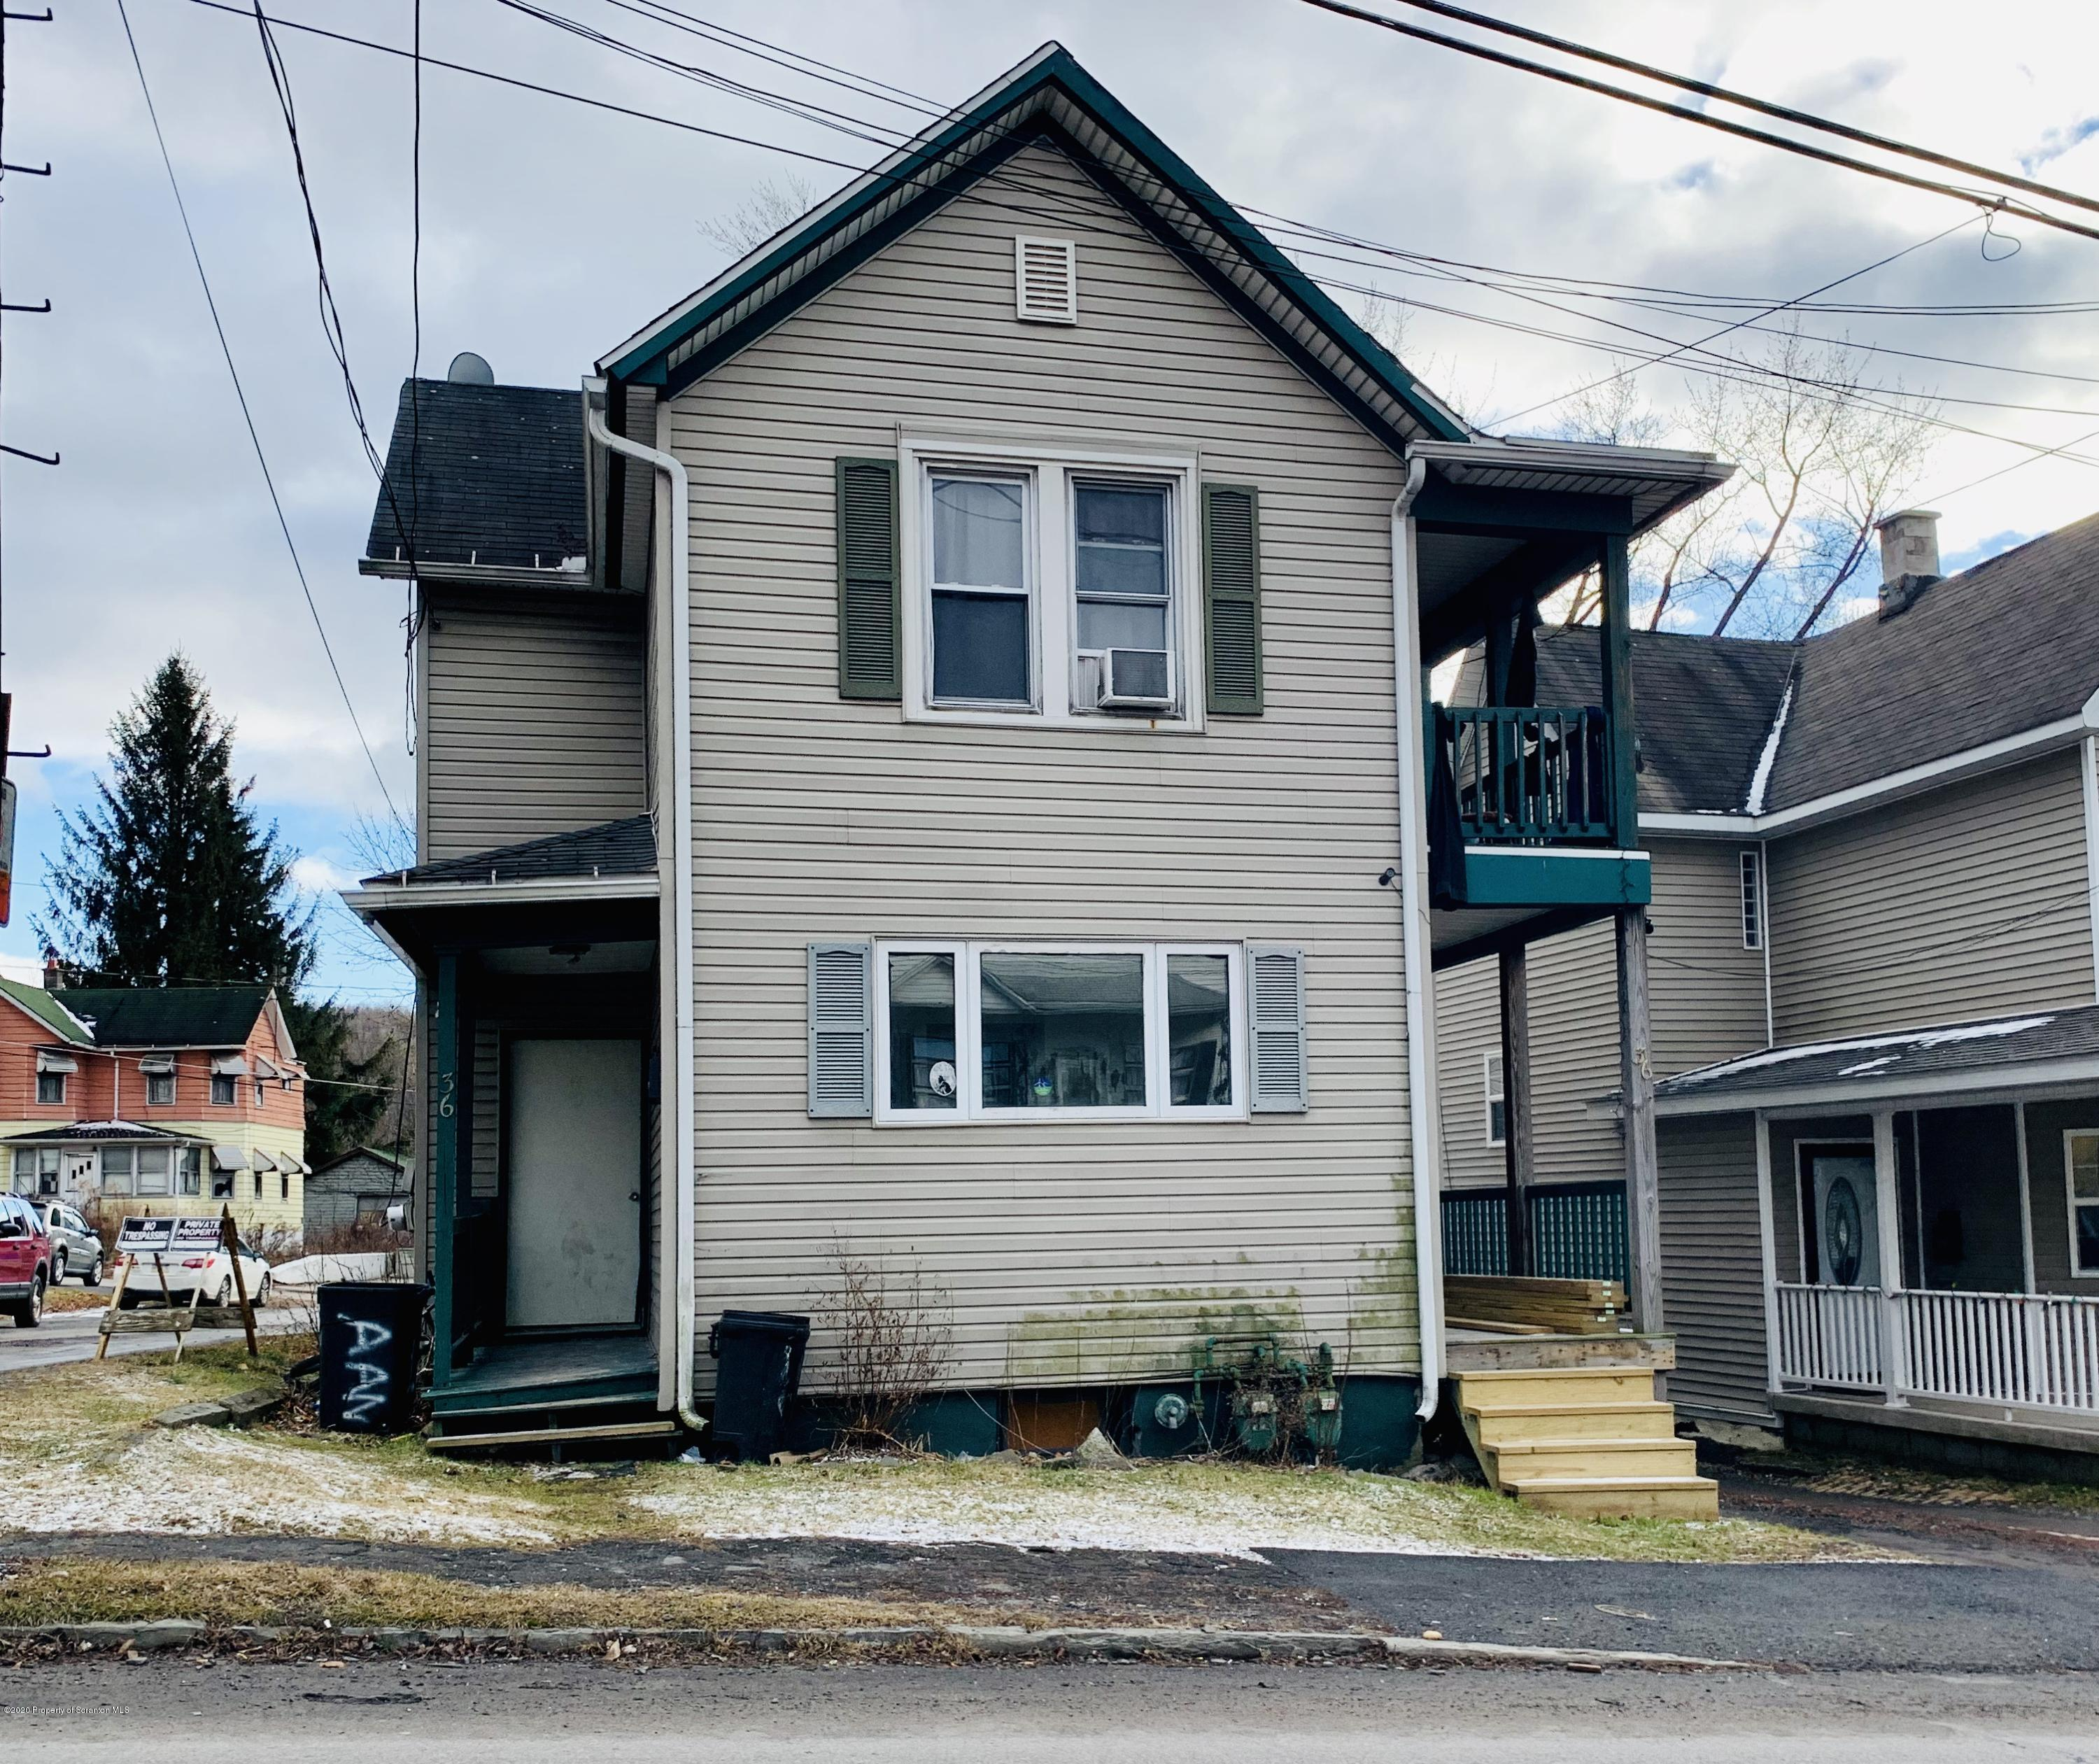 36 Canaan St, Carbondale, Pennsylvania 18407, ,Multi-Family,For Sale,Canaan,20-451